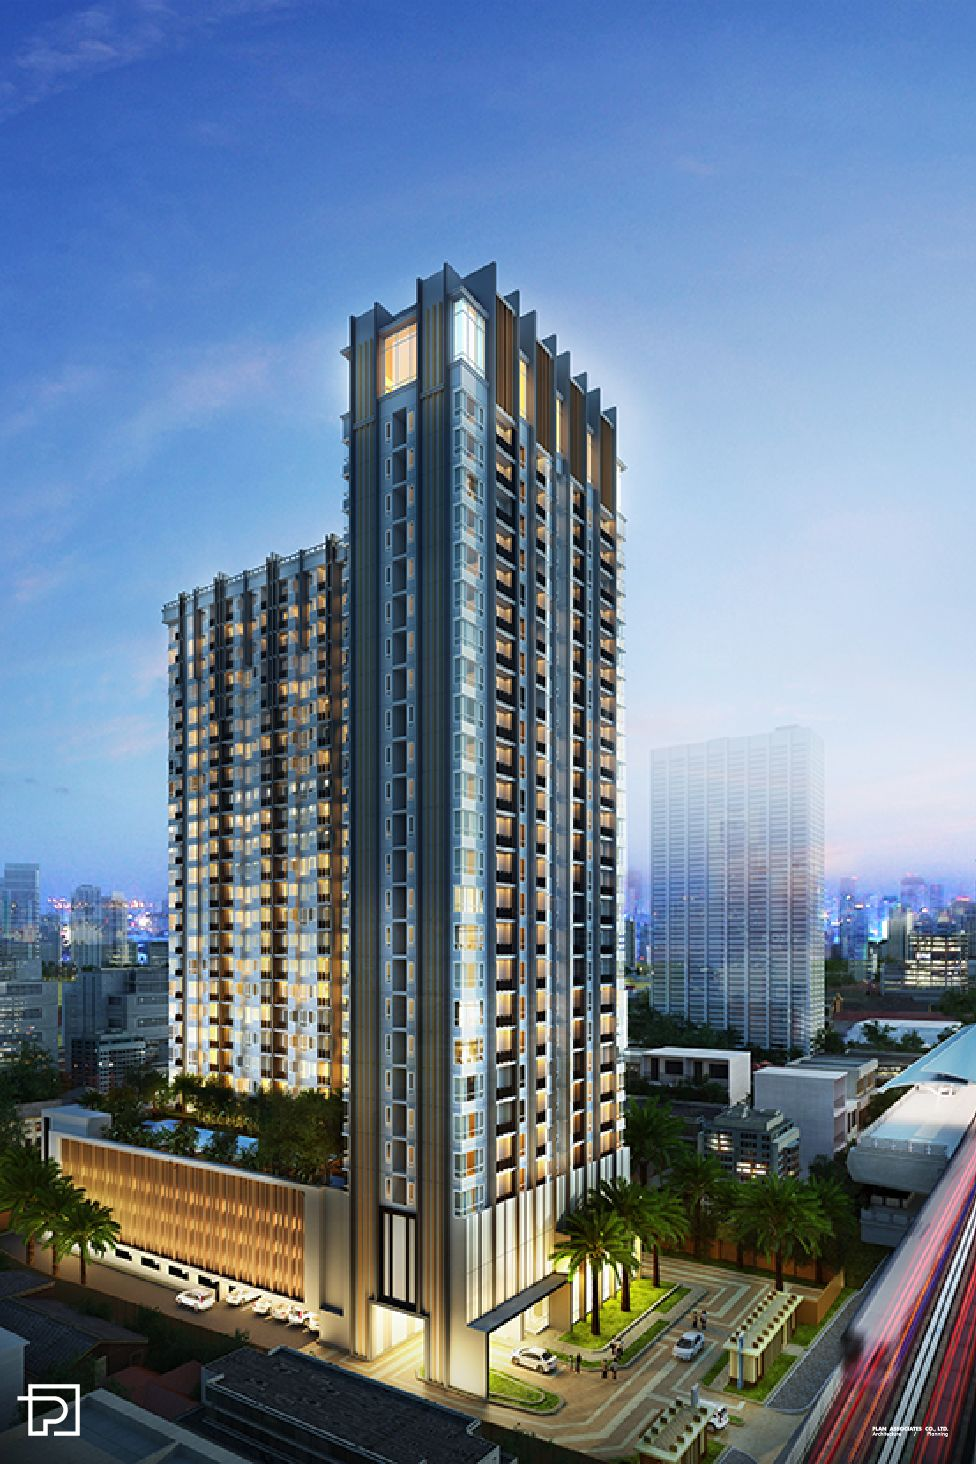 Condominium design architect plan associates co ltd for Condominium decoration